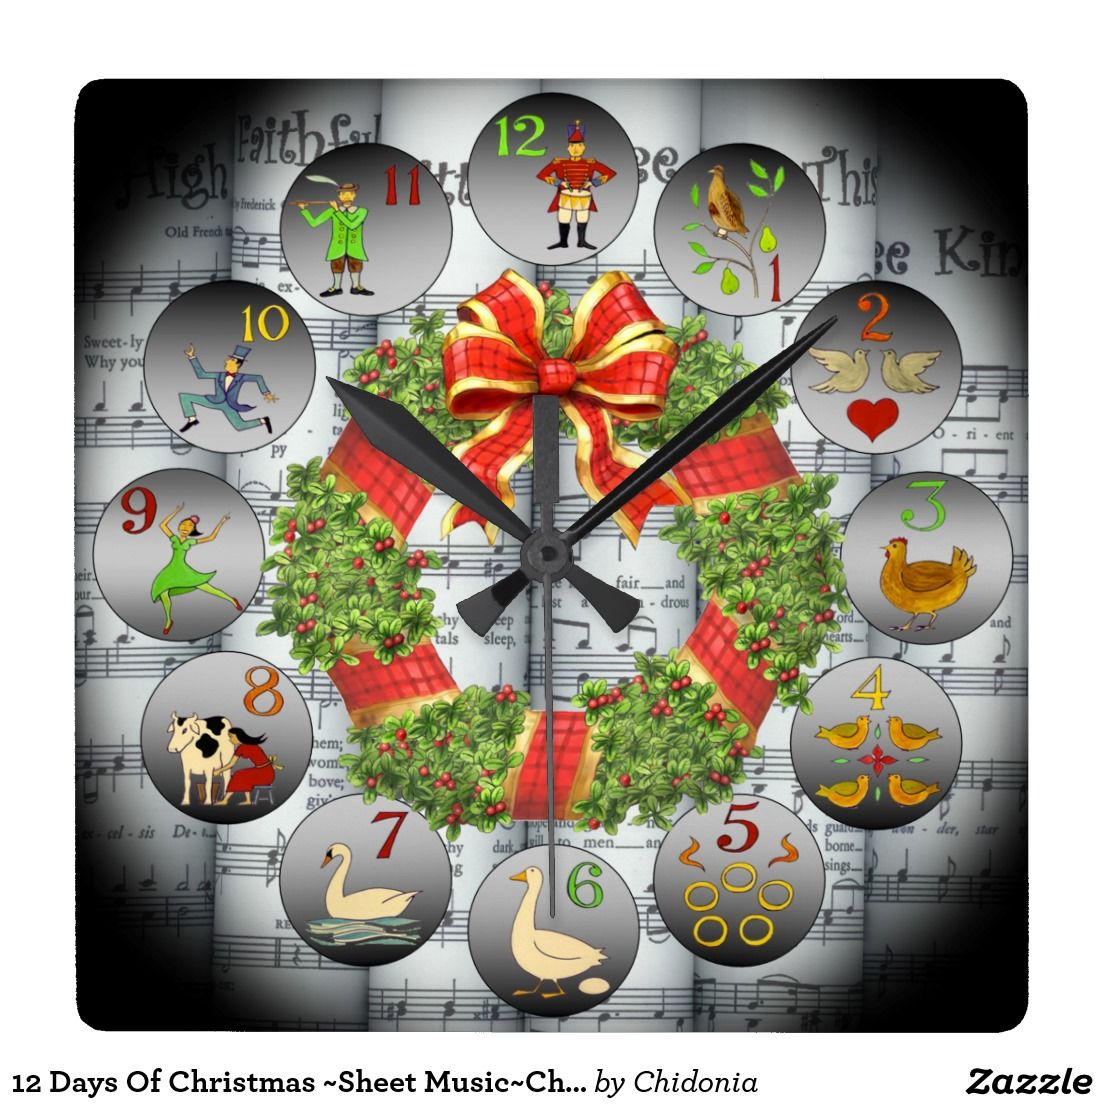 12 Days Of Christmas Sheet Music Christmas Wreath Square Wall Clock Zazzle Com Christmas Sheet Music Christmas Wreaths Square Wall Clock